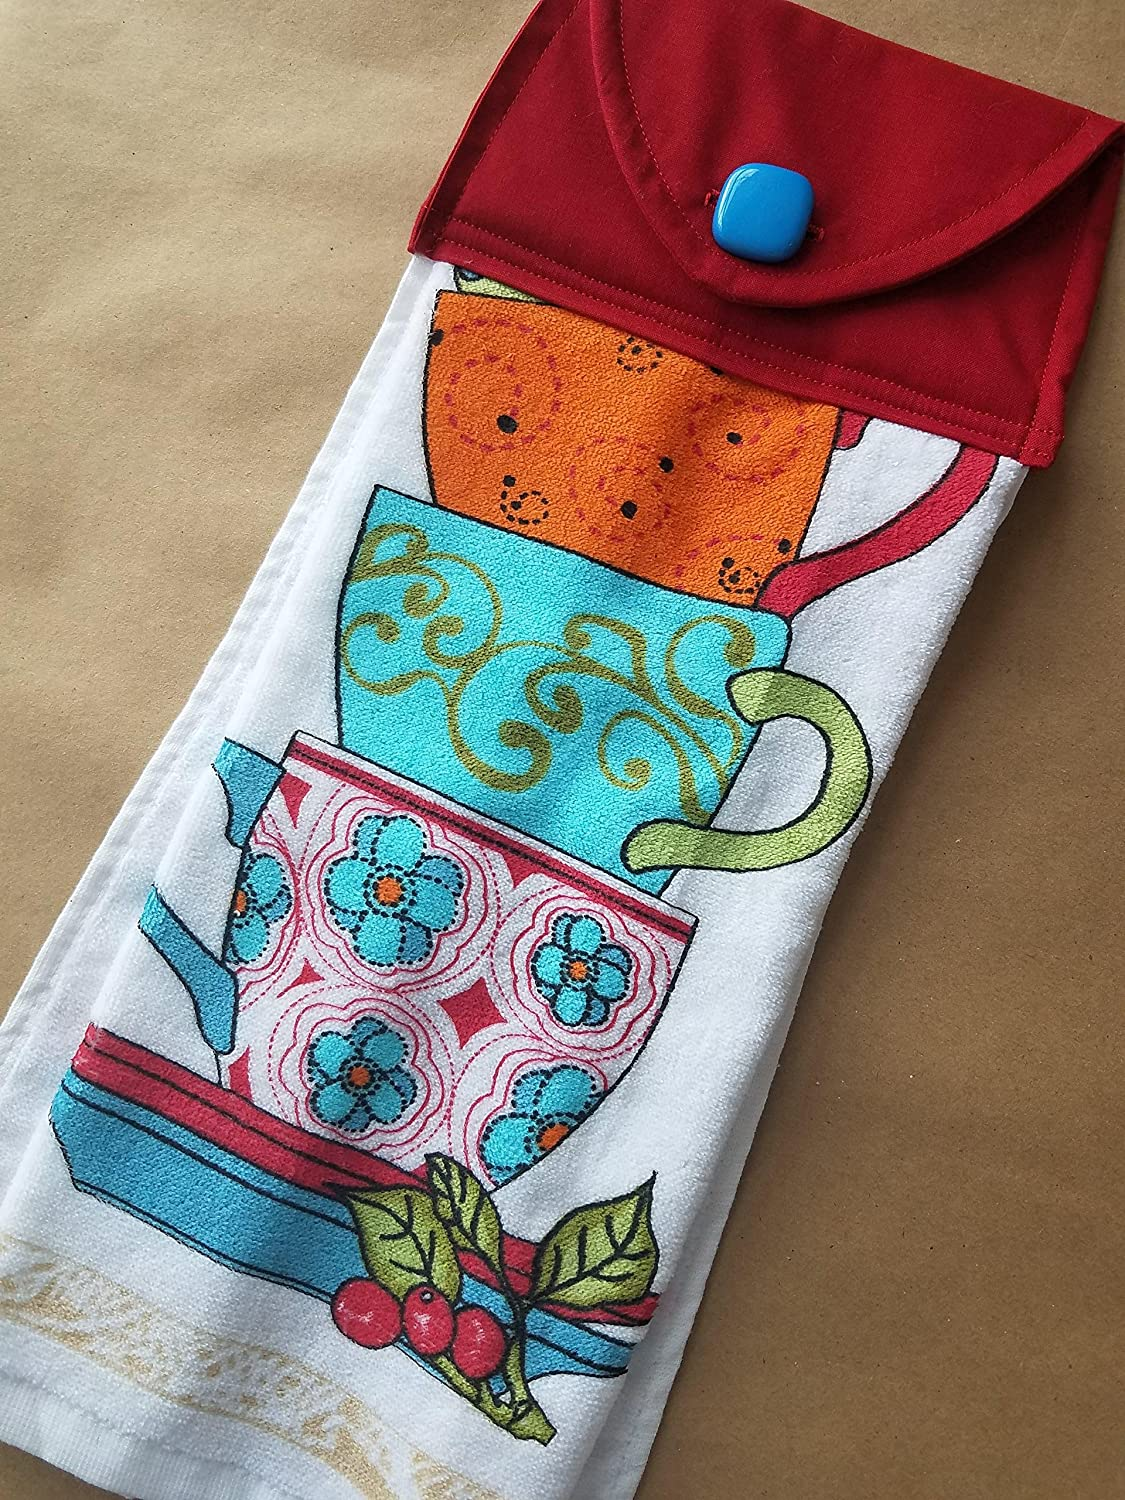 Amazon.com: Teacup Hanging Kitchen Towel, Vintage Inspired Button ...